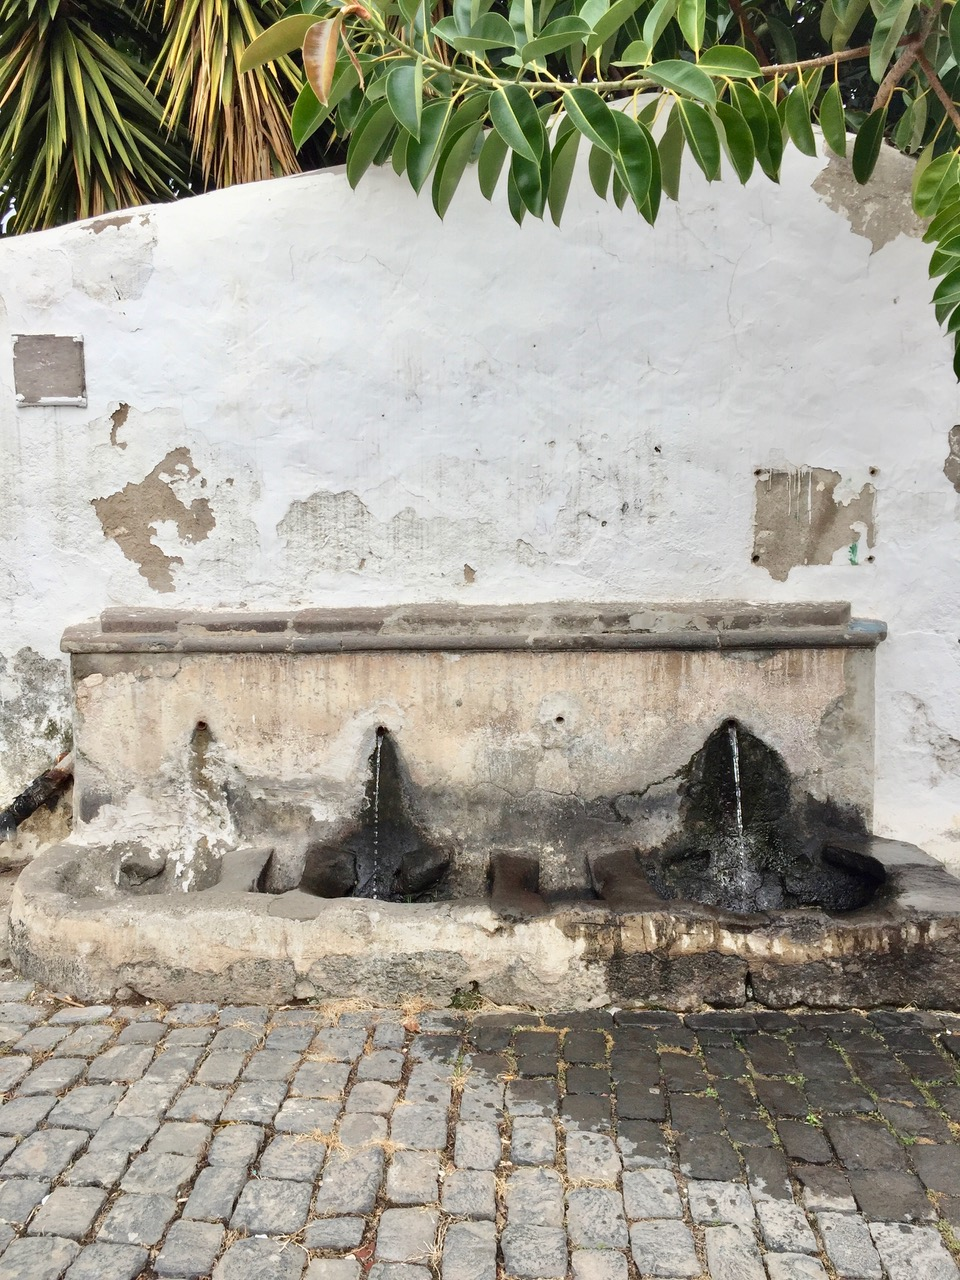 An old fountain where water pours out of two holes in an old brick wall.